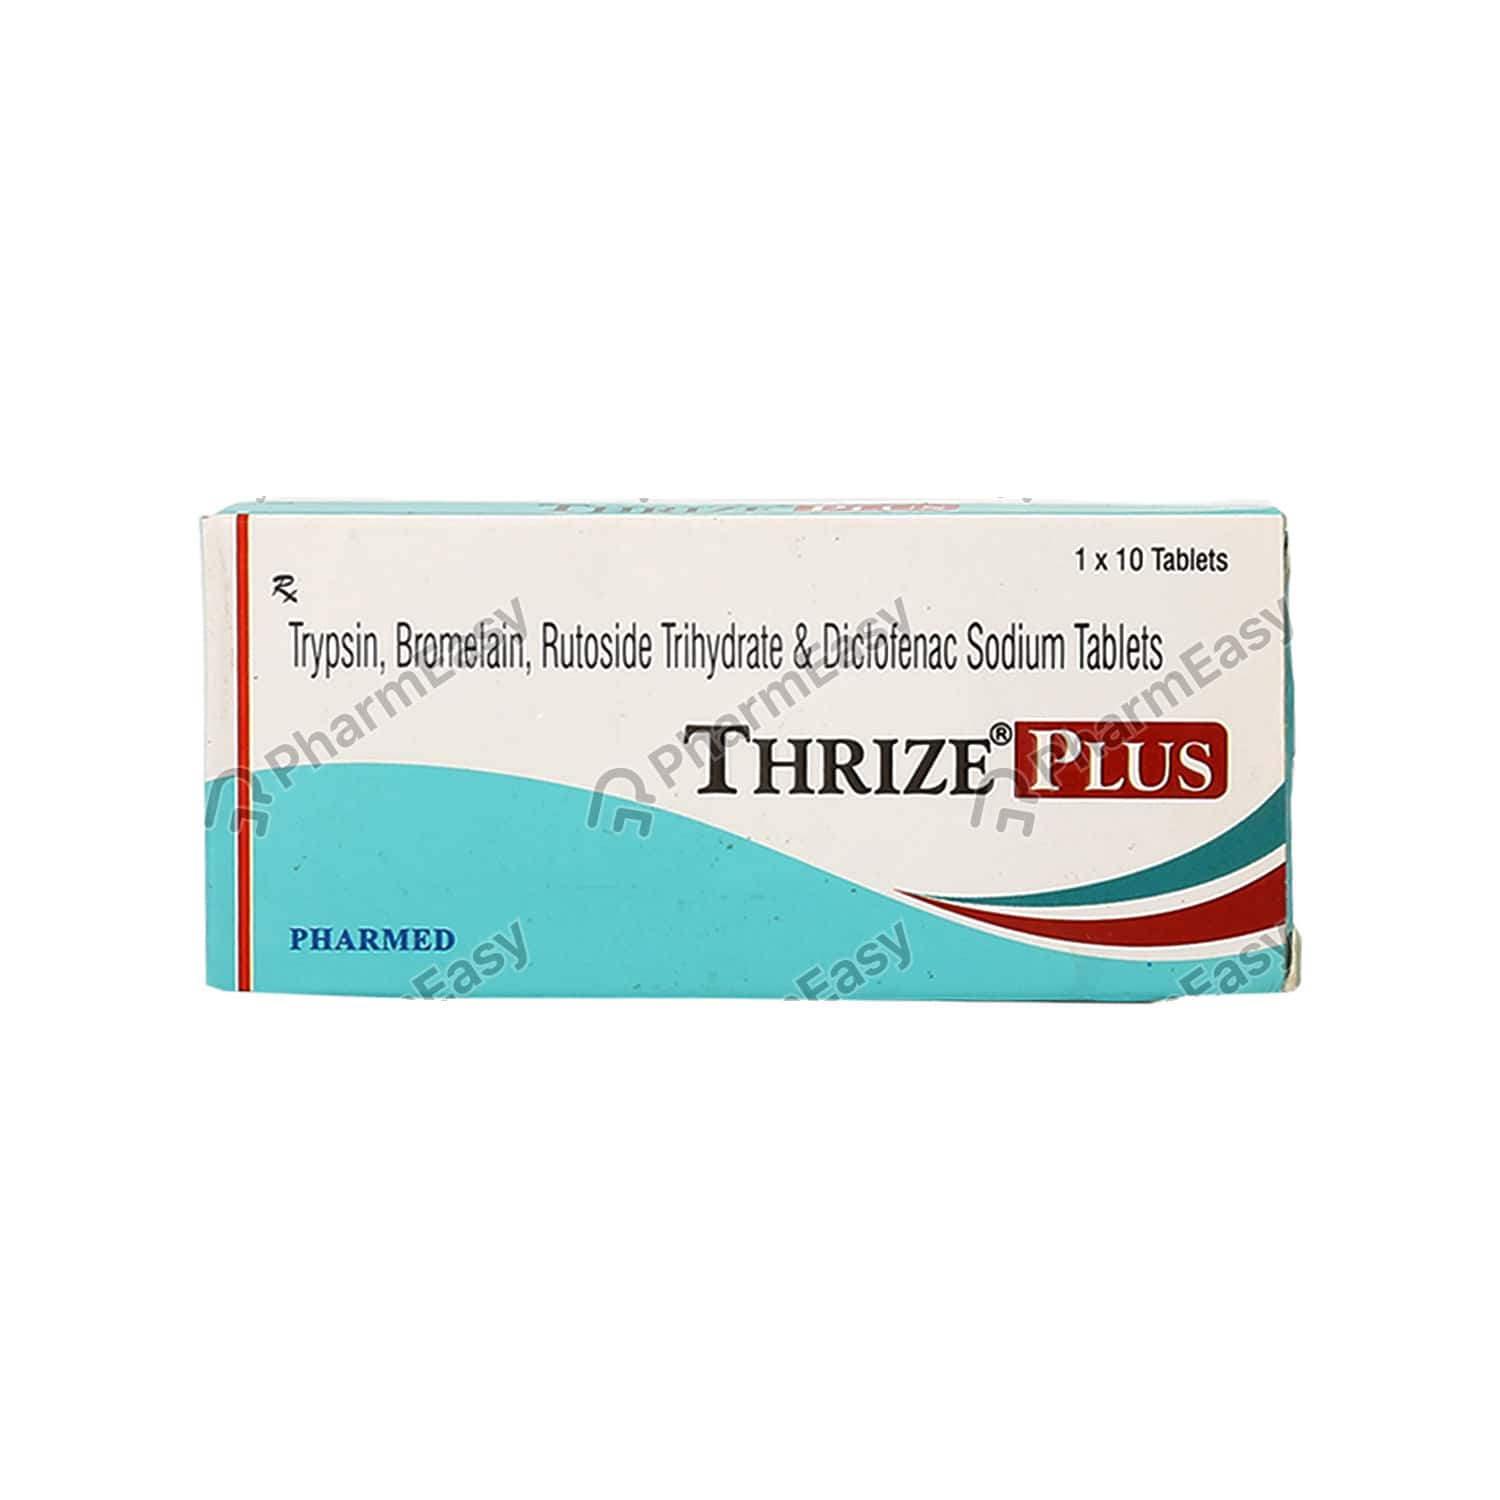 Thrize Plus Tablet